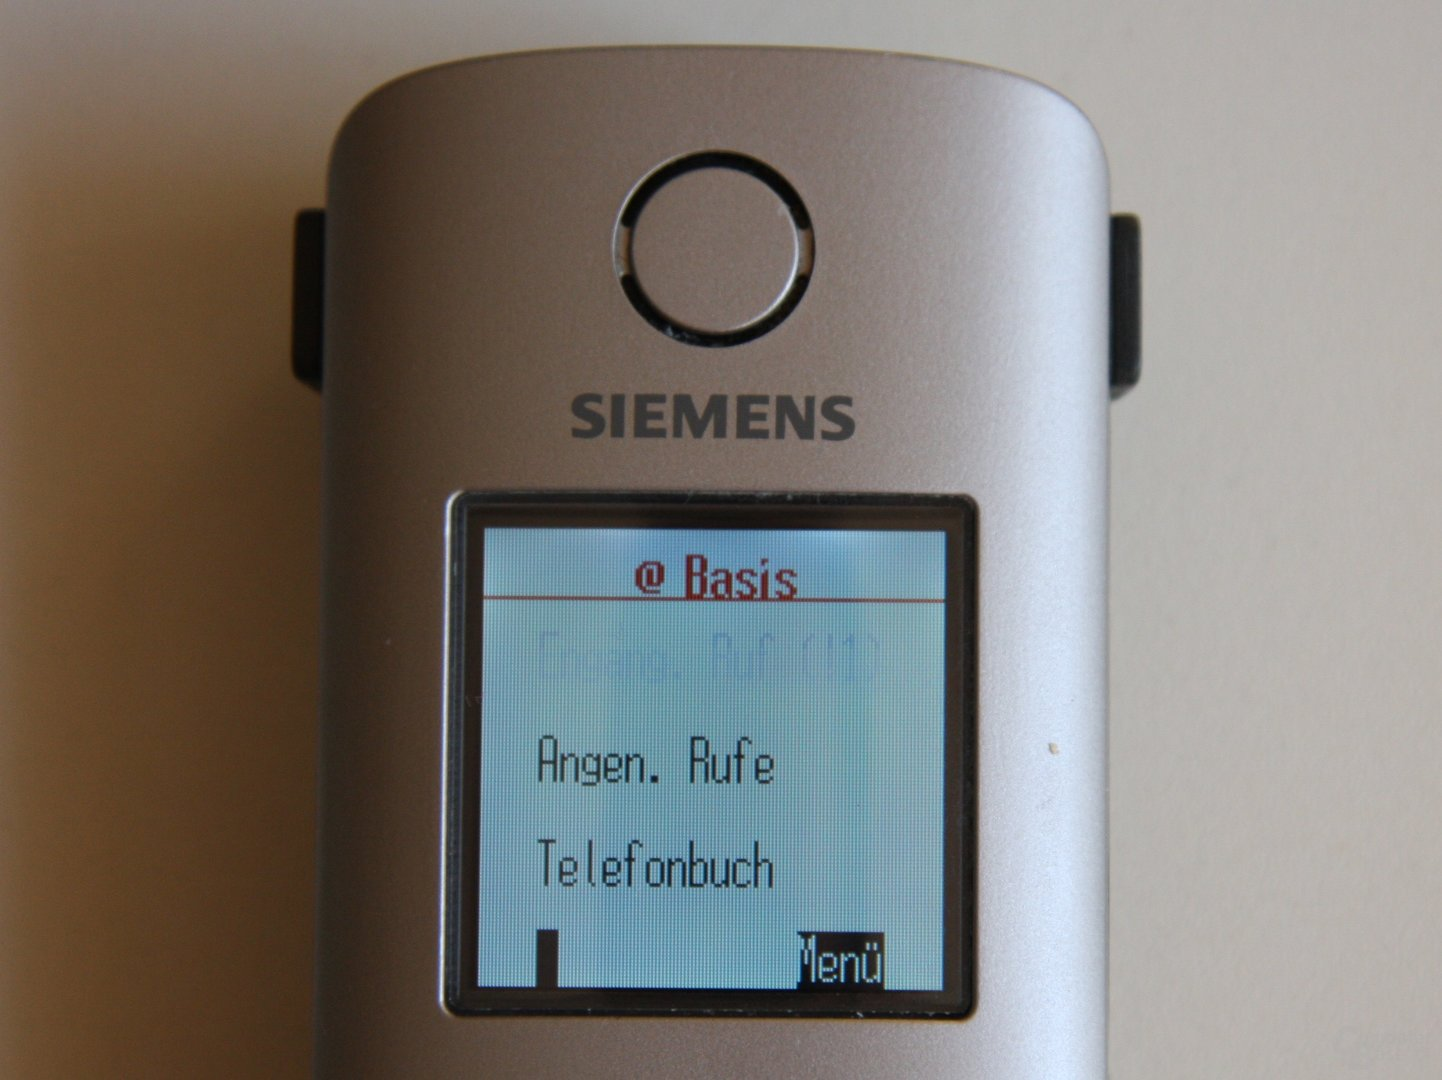 AVM FRITZ!BOX 7270 Firmware 54.04.97-10754